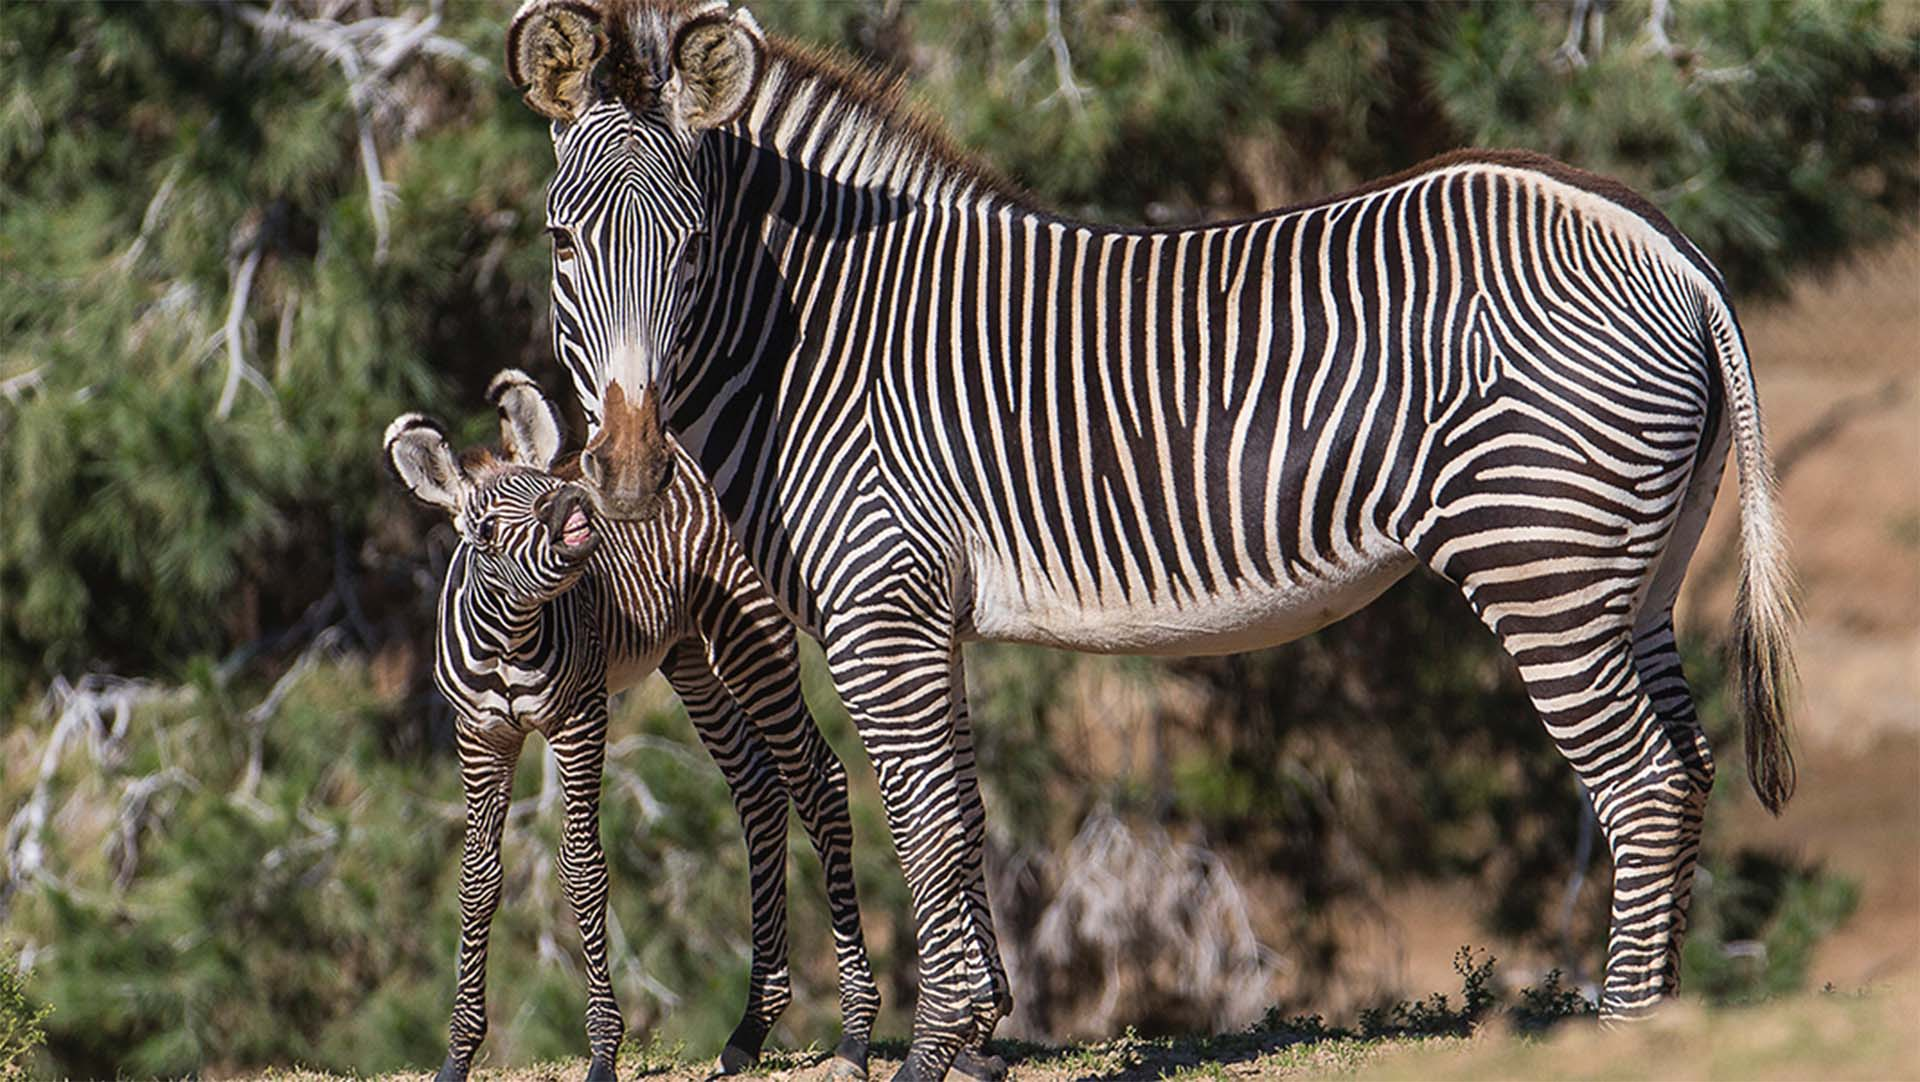 Zebra | San Diego Zoo Animals & Plants